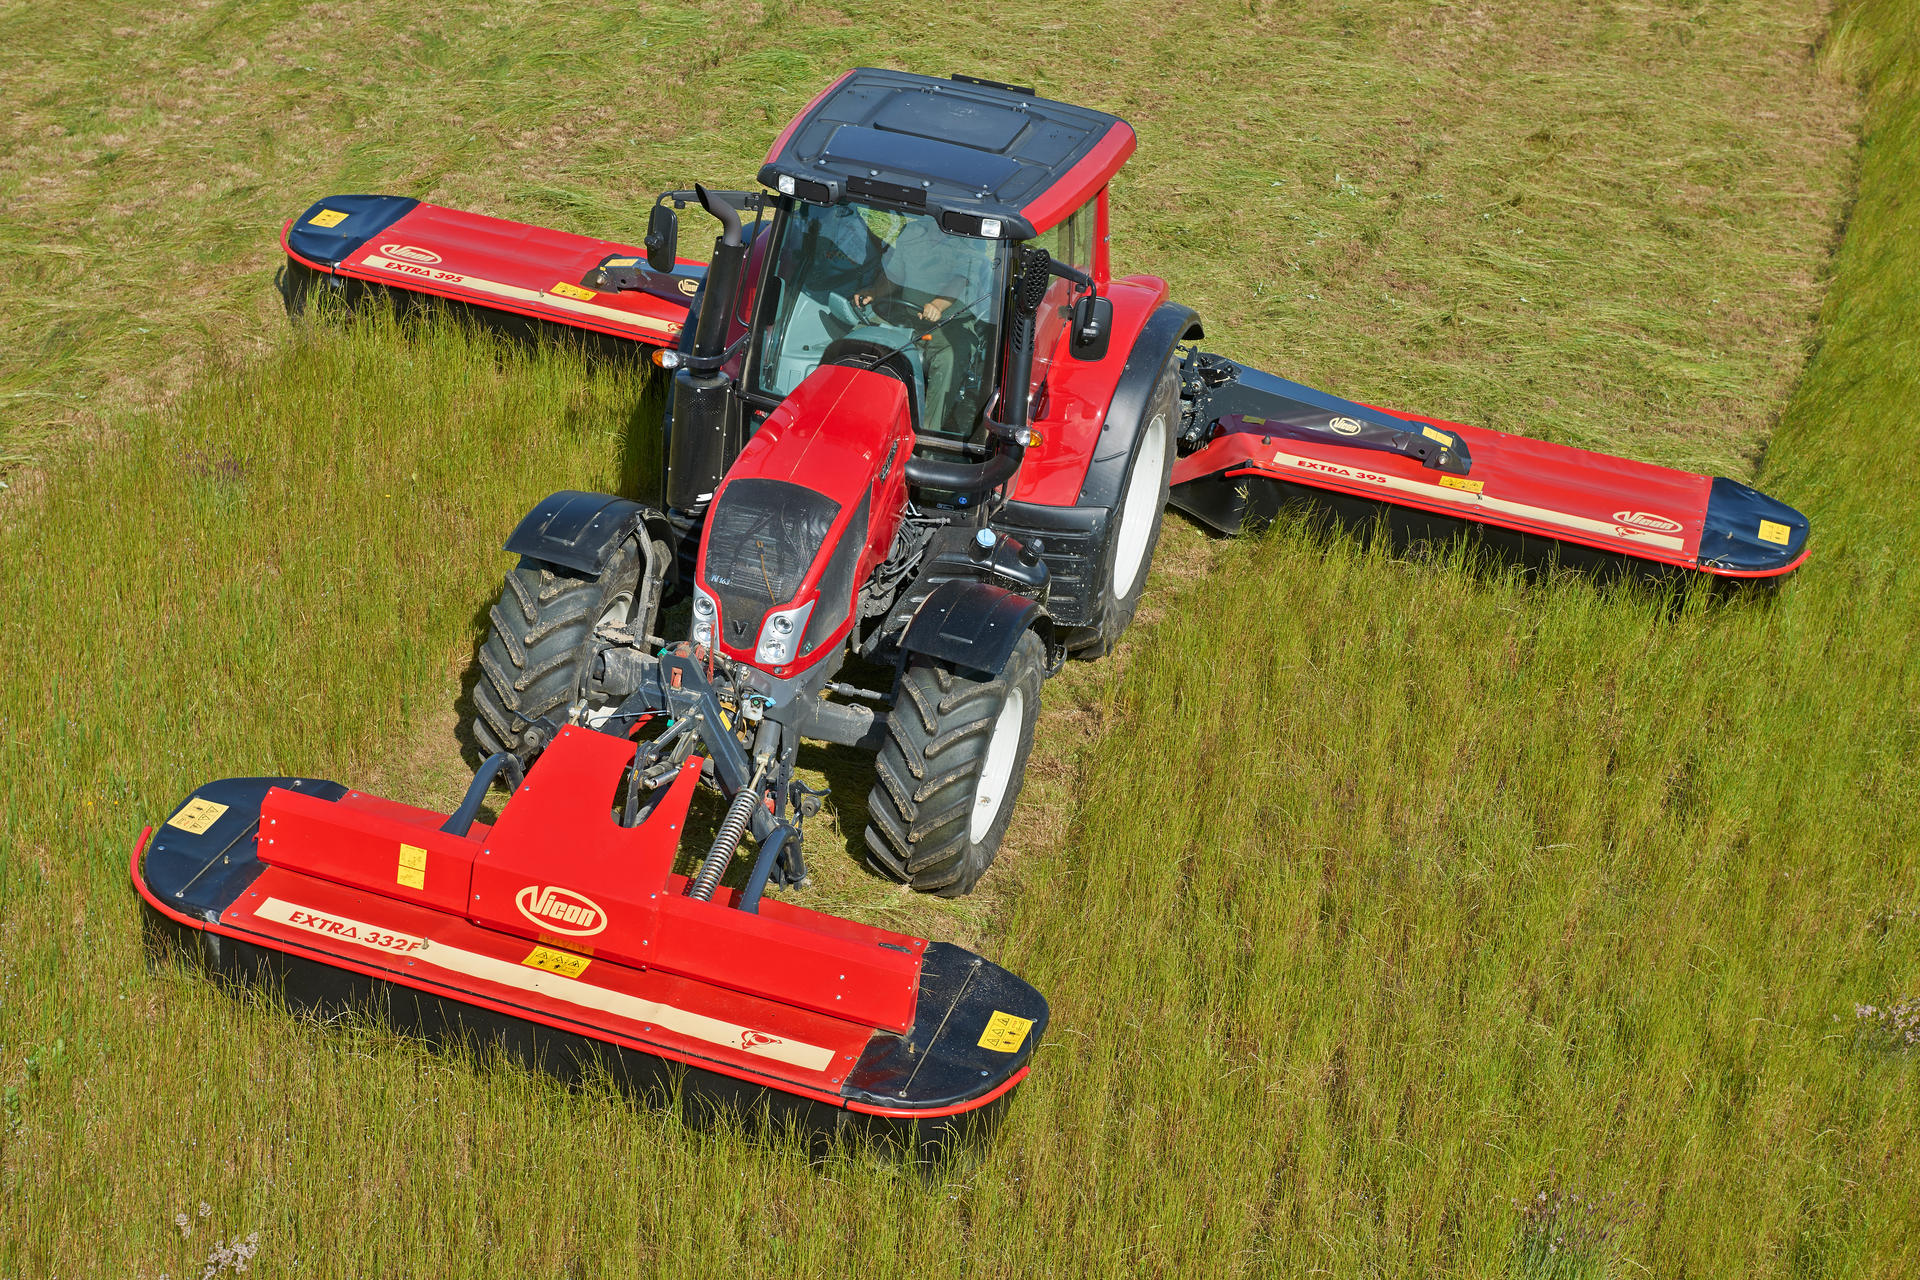 Tractor Rear Disc : Rear mounted disc mowers butterfly vicon extra